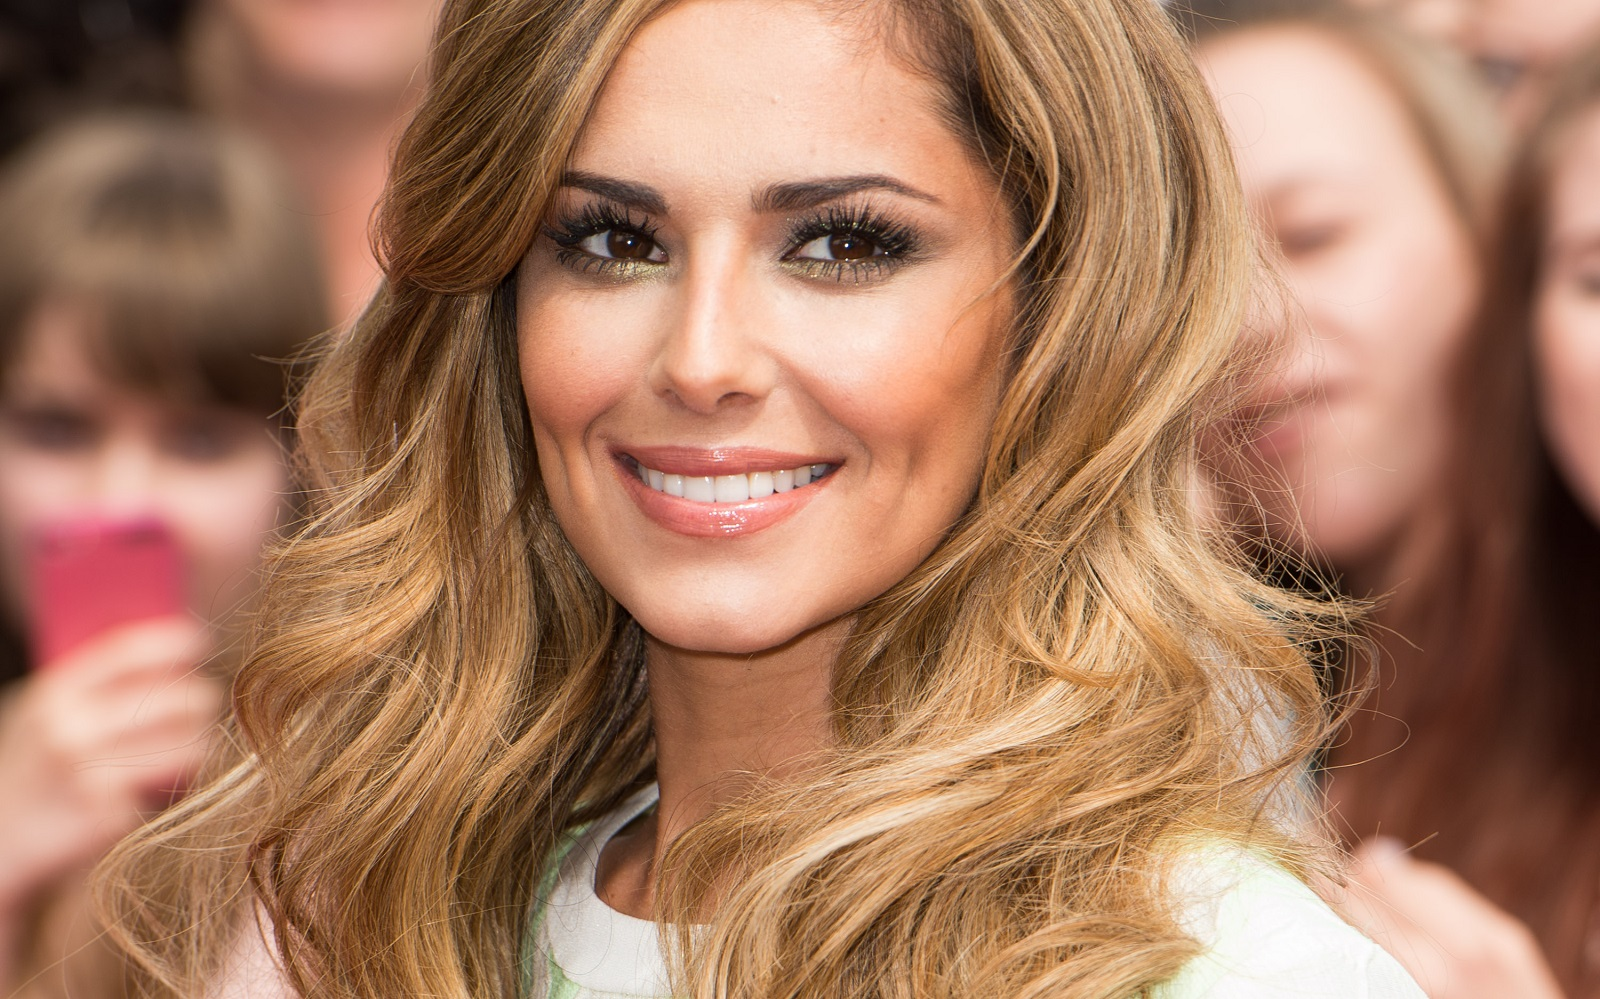 ICloud Cheryl Cole nude (71 foto and video), Ass, Hot, Twitter, lingerie 2019